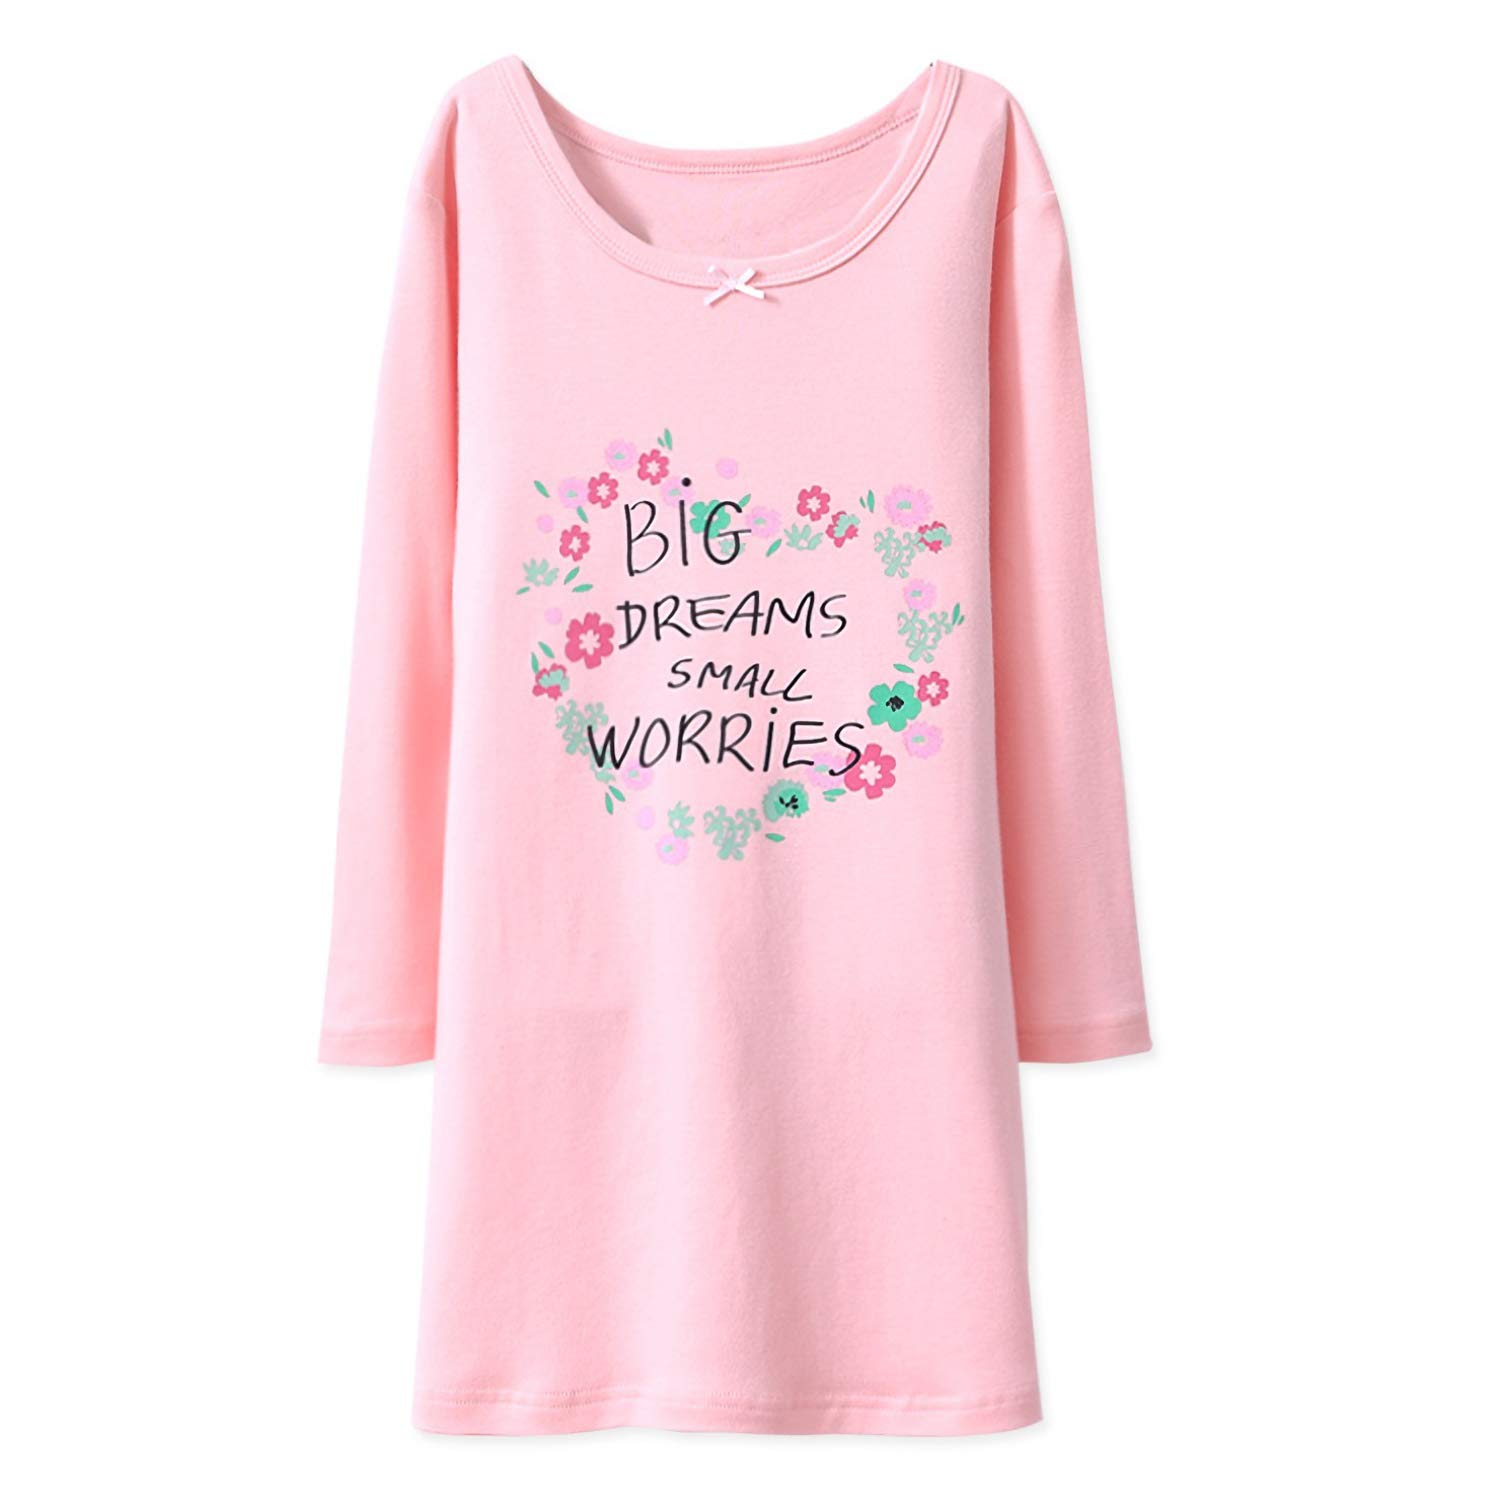 BLOMDE Girls' Floral Nightie Flower Printing Sleepwear Cotton Sleep Shirts for 3-12 Years